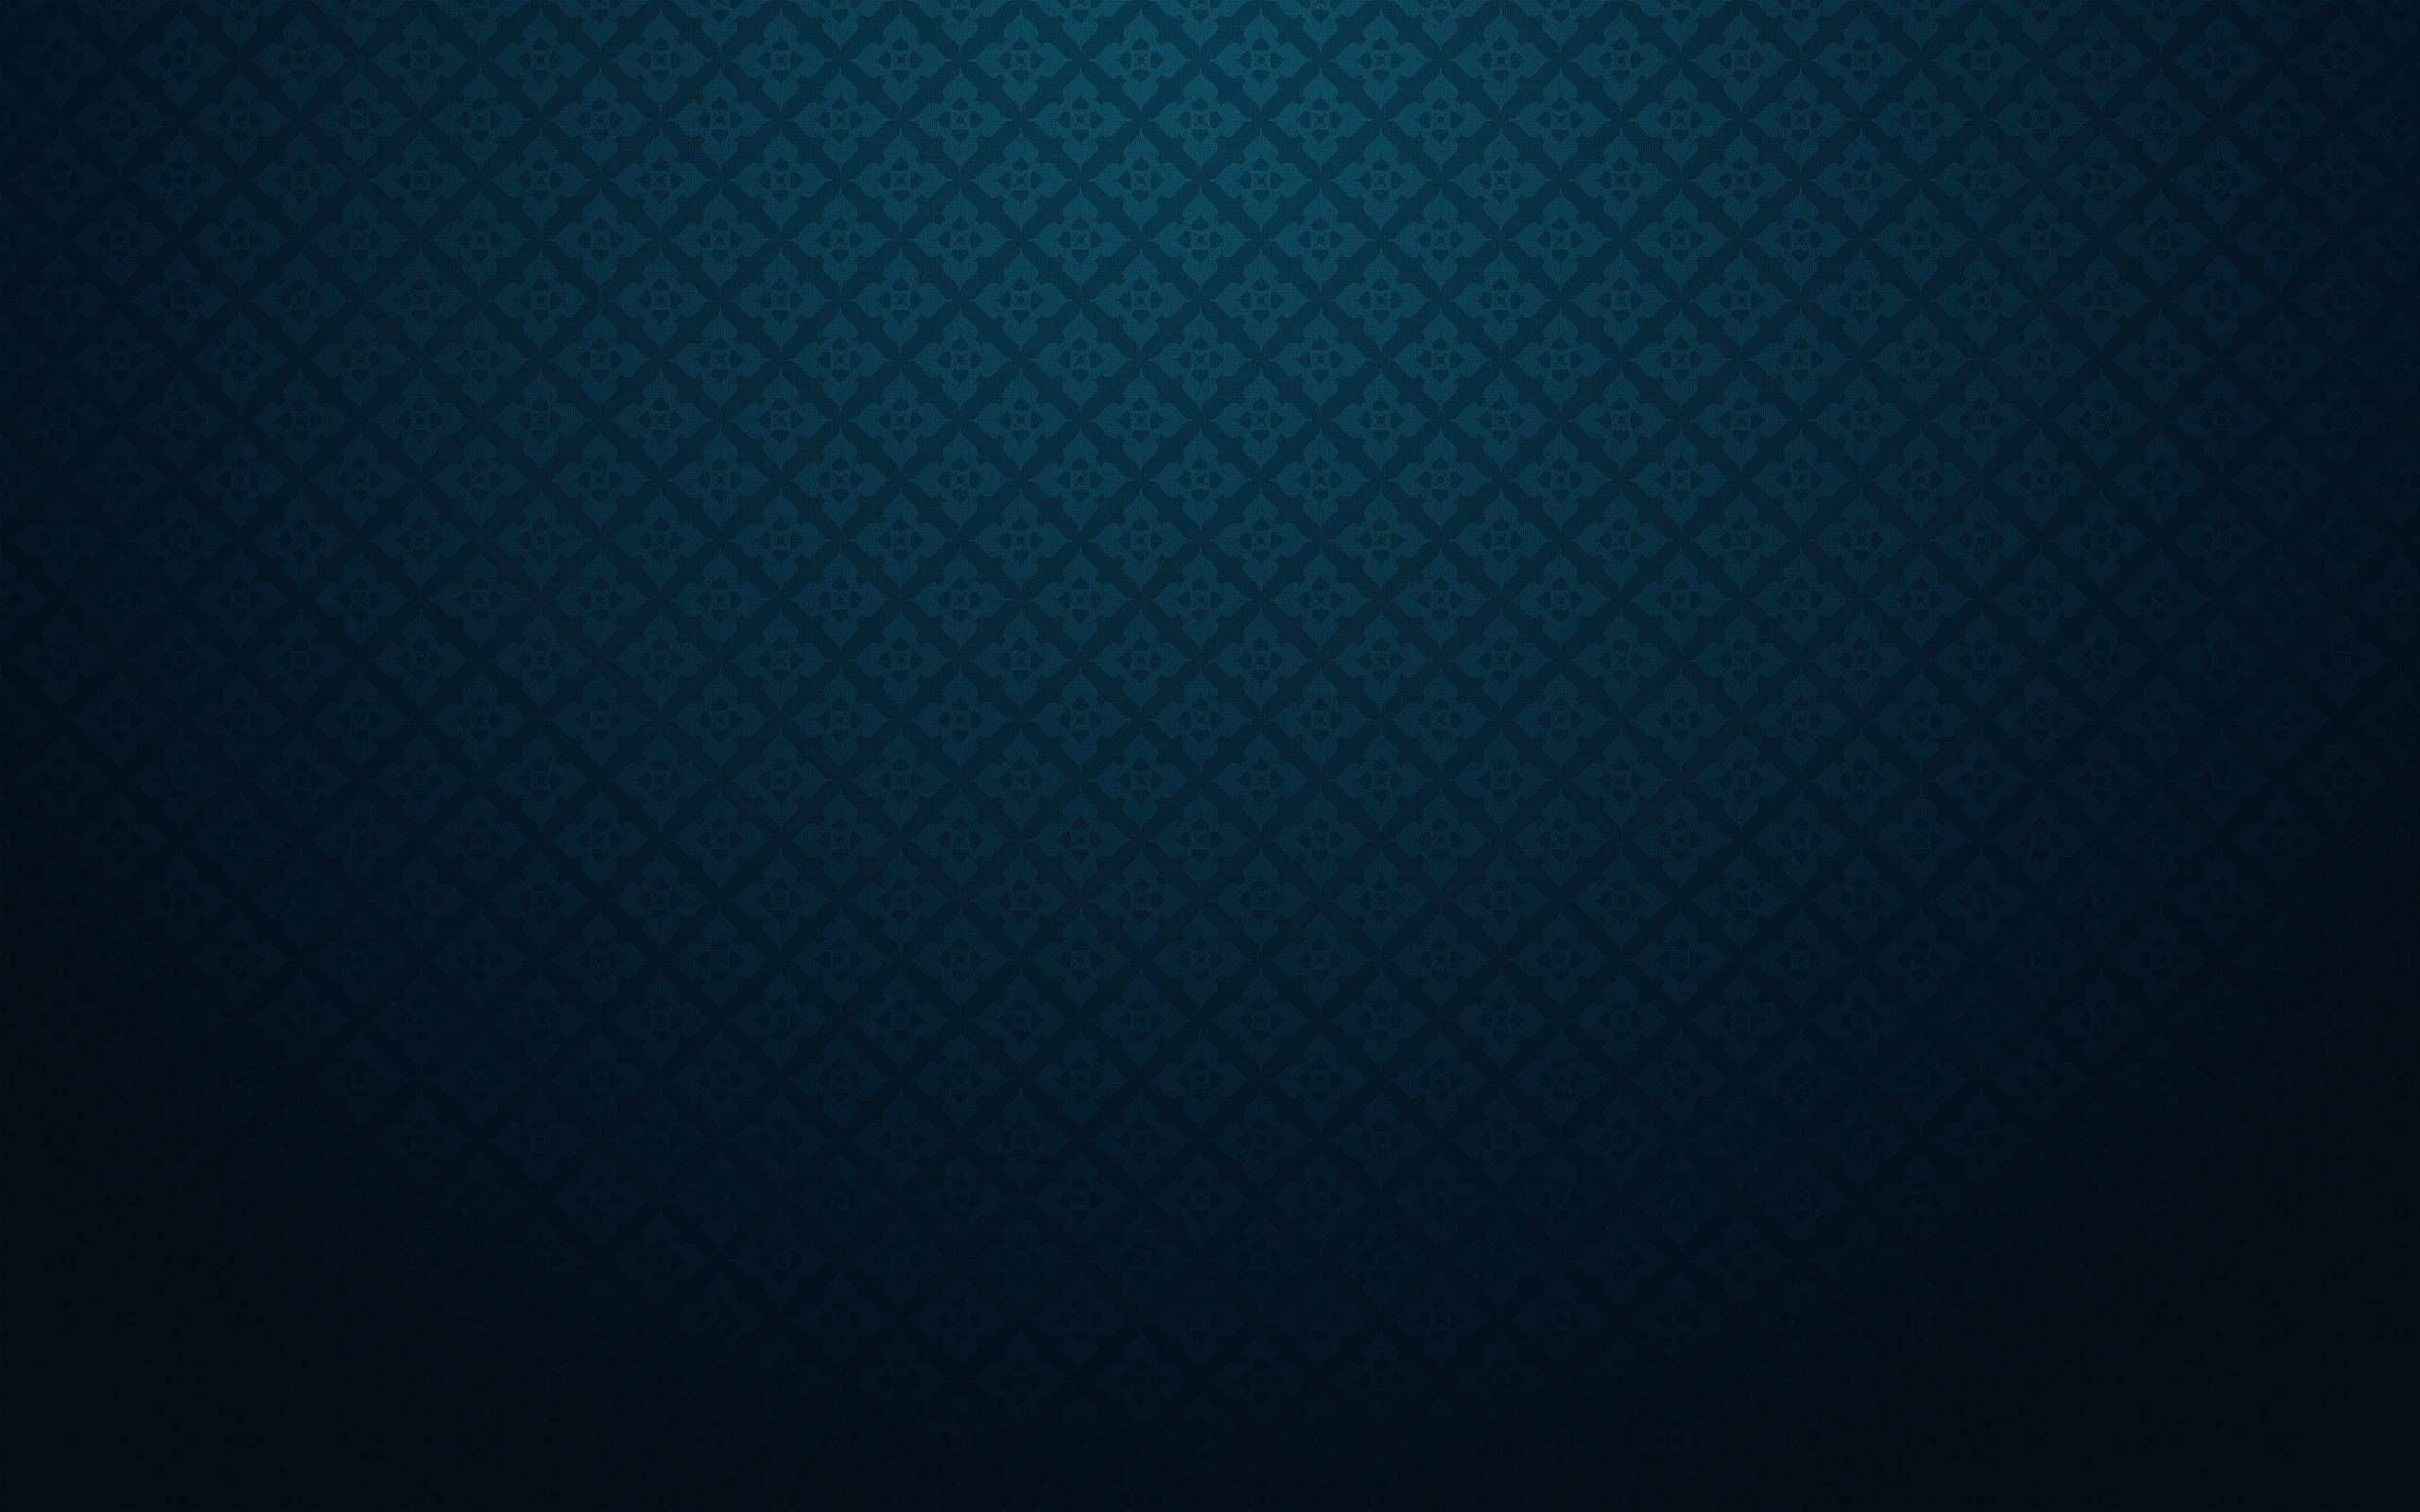 Res: 2560x1600, Texture Wallpaper Collection For Free Download | HD Wallpapers | Pinterest  | Textured wallpaper, Wallpaper and Textured background